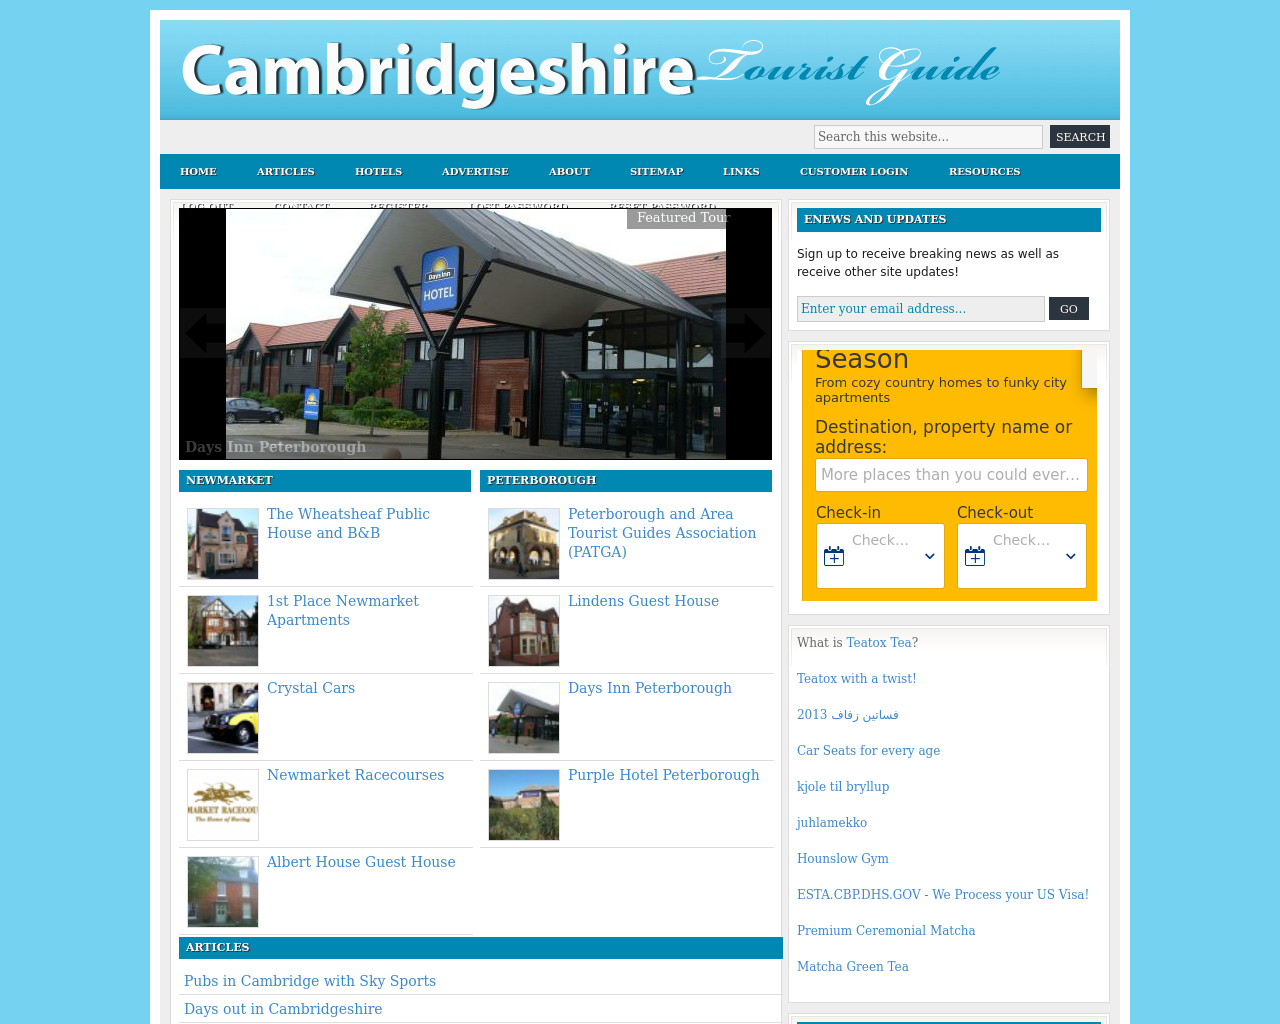 Cambridgeshire-Tourist-Guide-Advertising-Reviews-Pricing